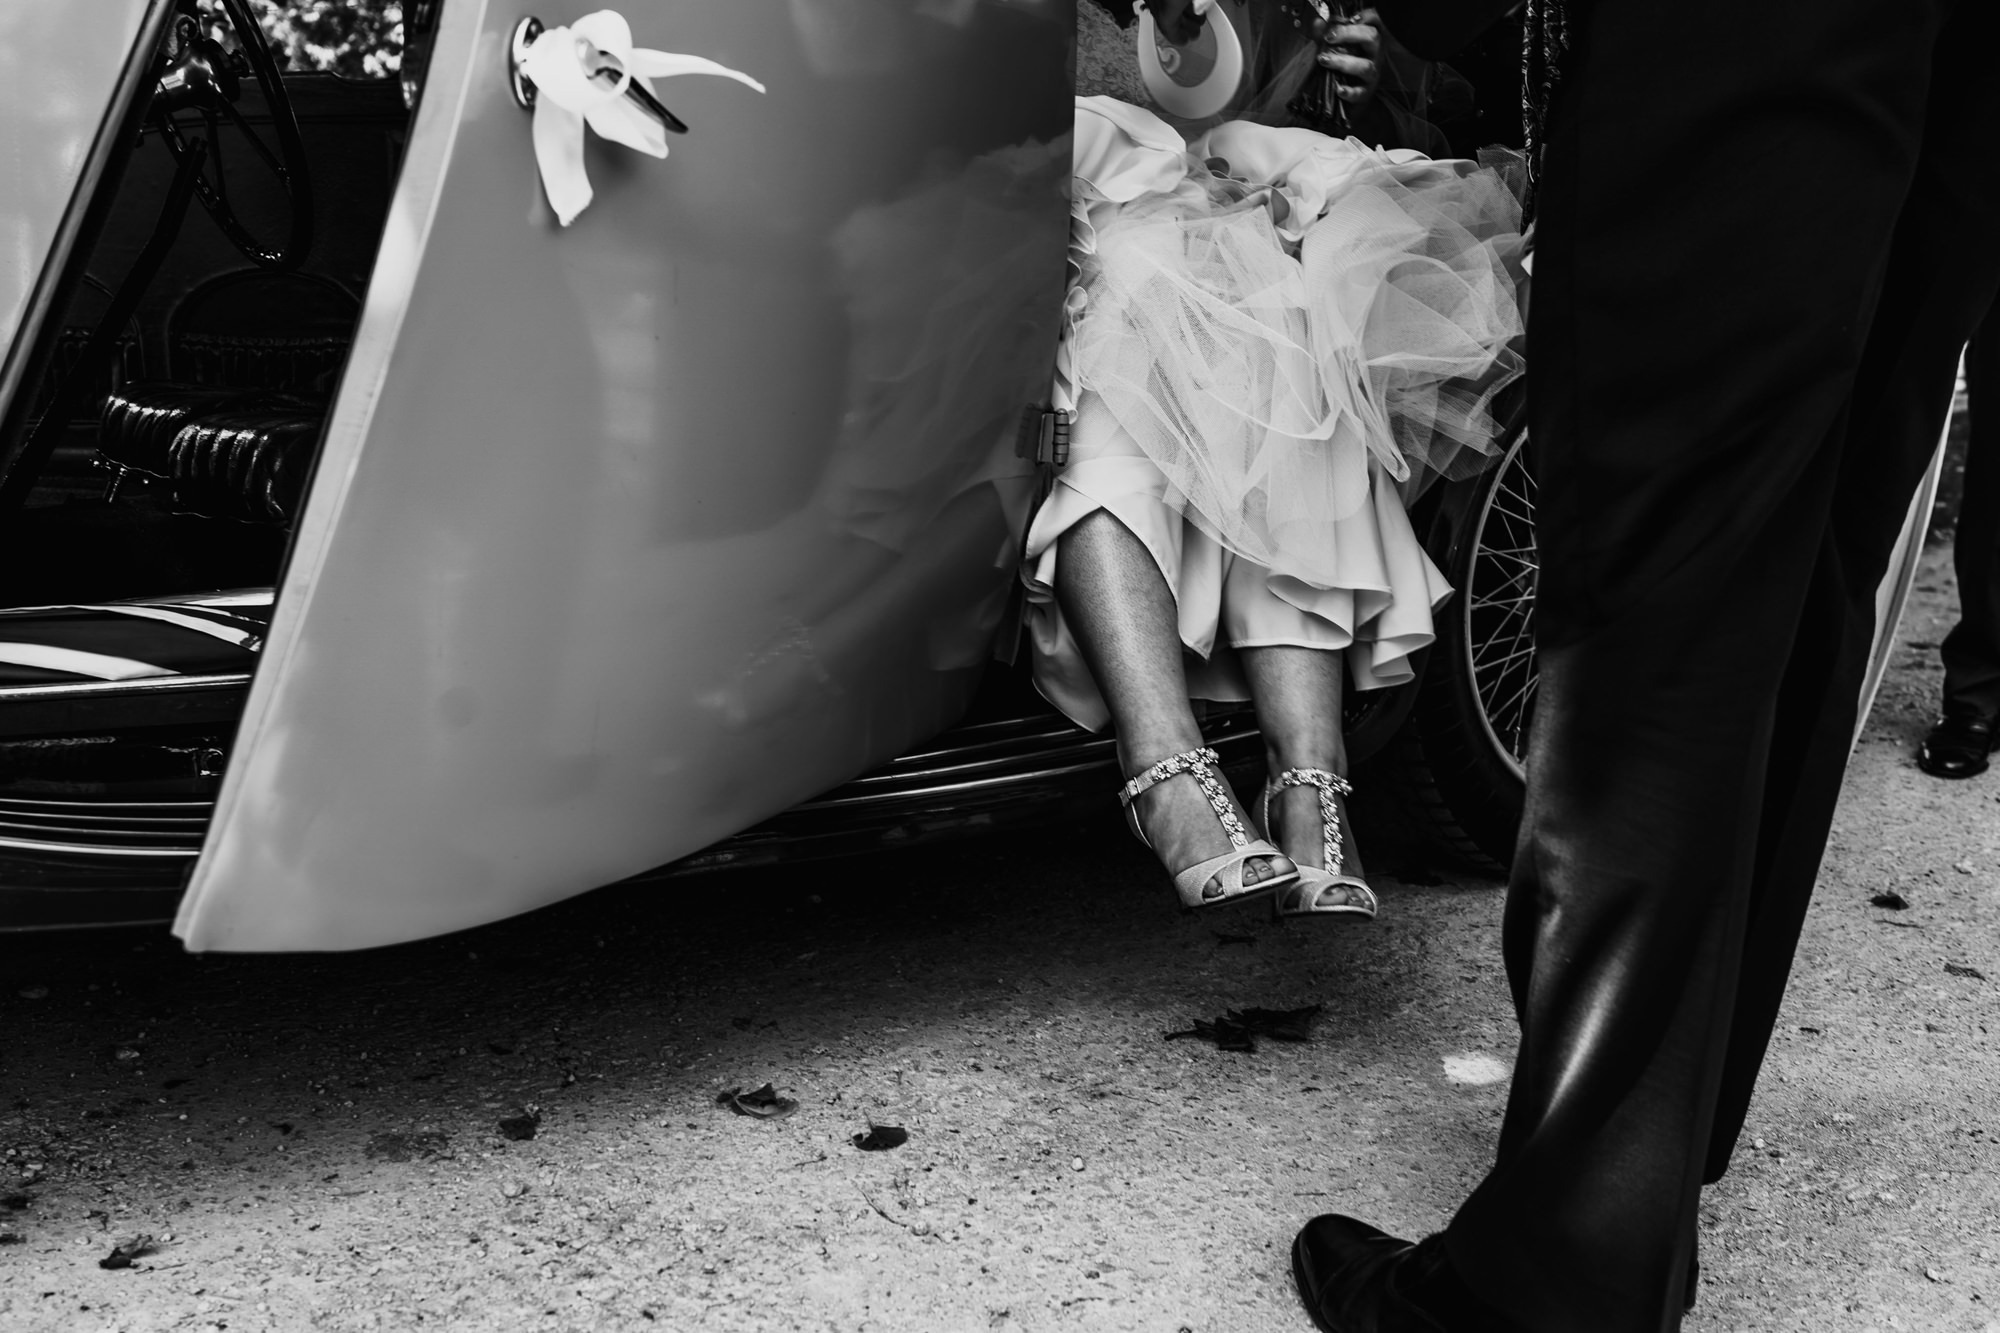 brides dress and shoes coming out of car in black and white